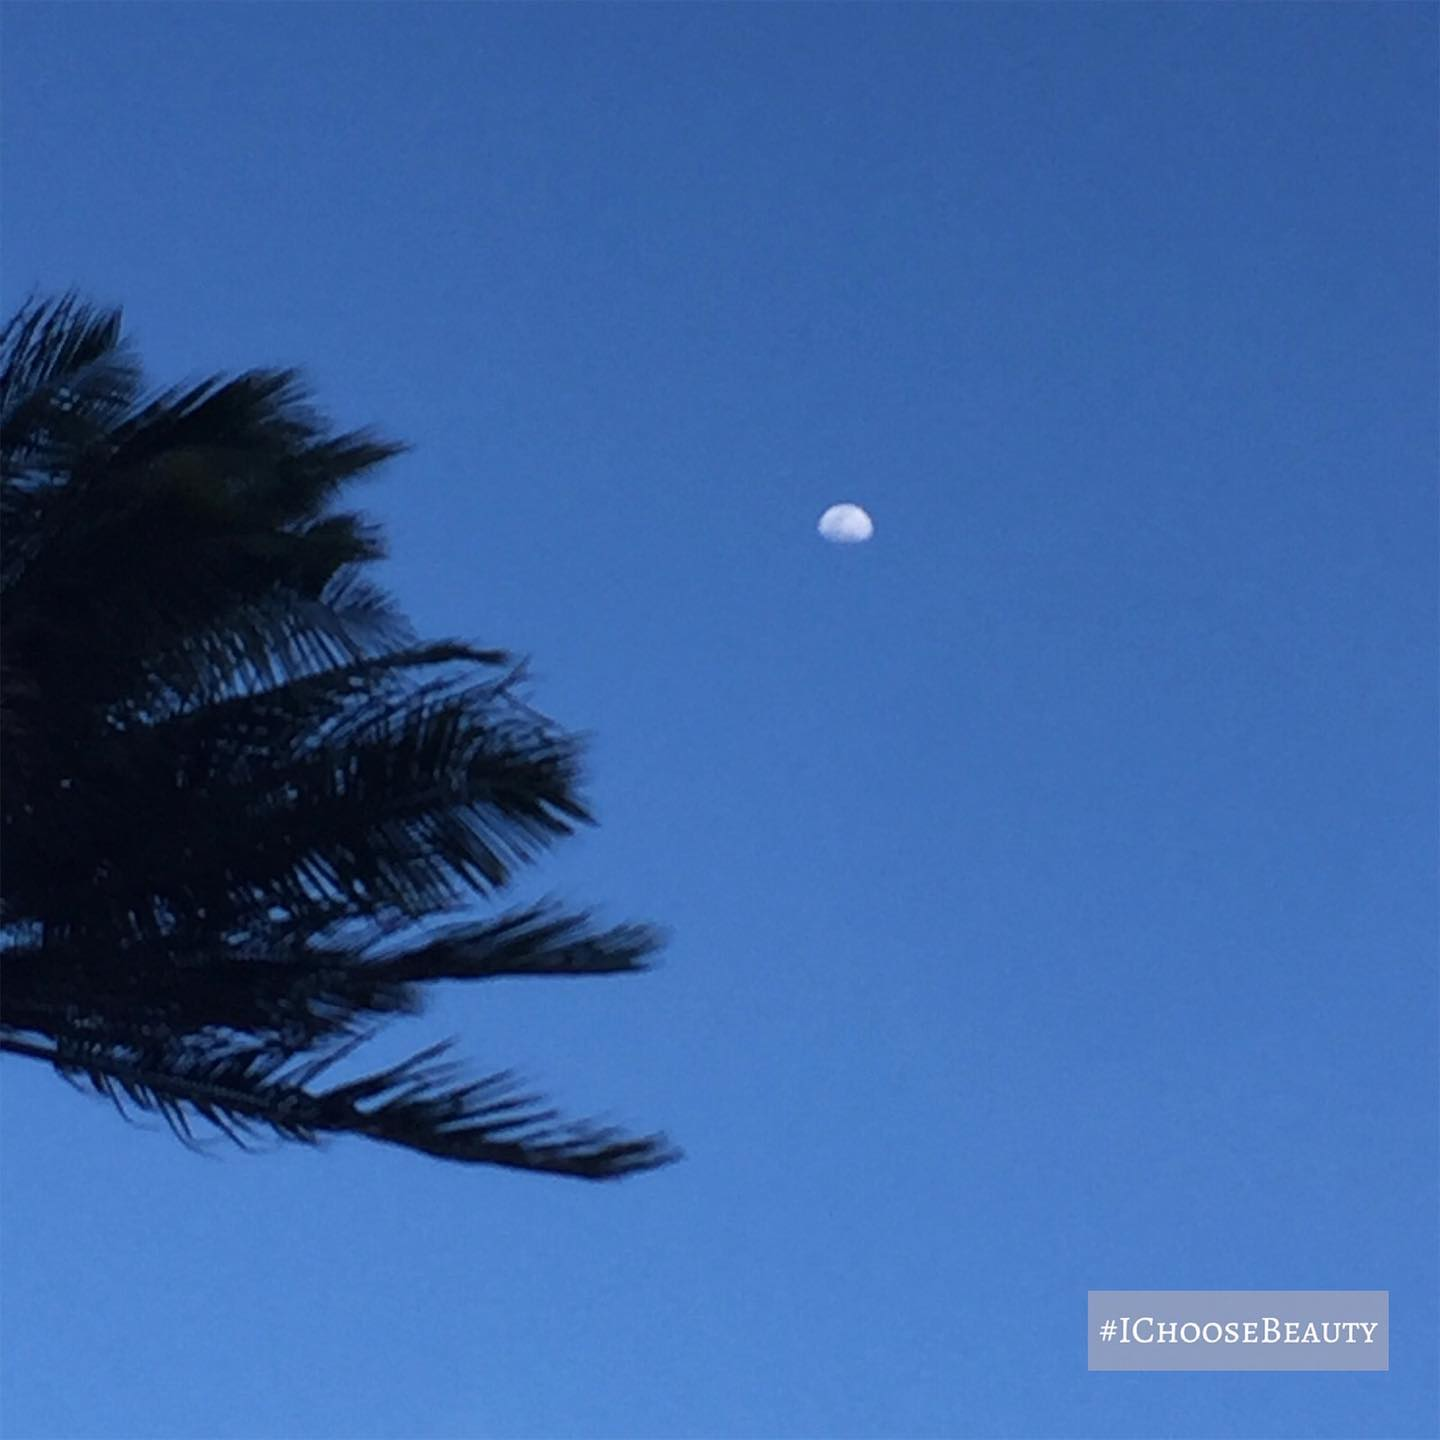 I shot this picture of the moon as Paul was driving - I didn't notice how cool the palm tree looked blowing towards it until I posted this.  #ichoosebeauty Day 2356